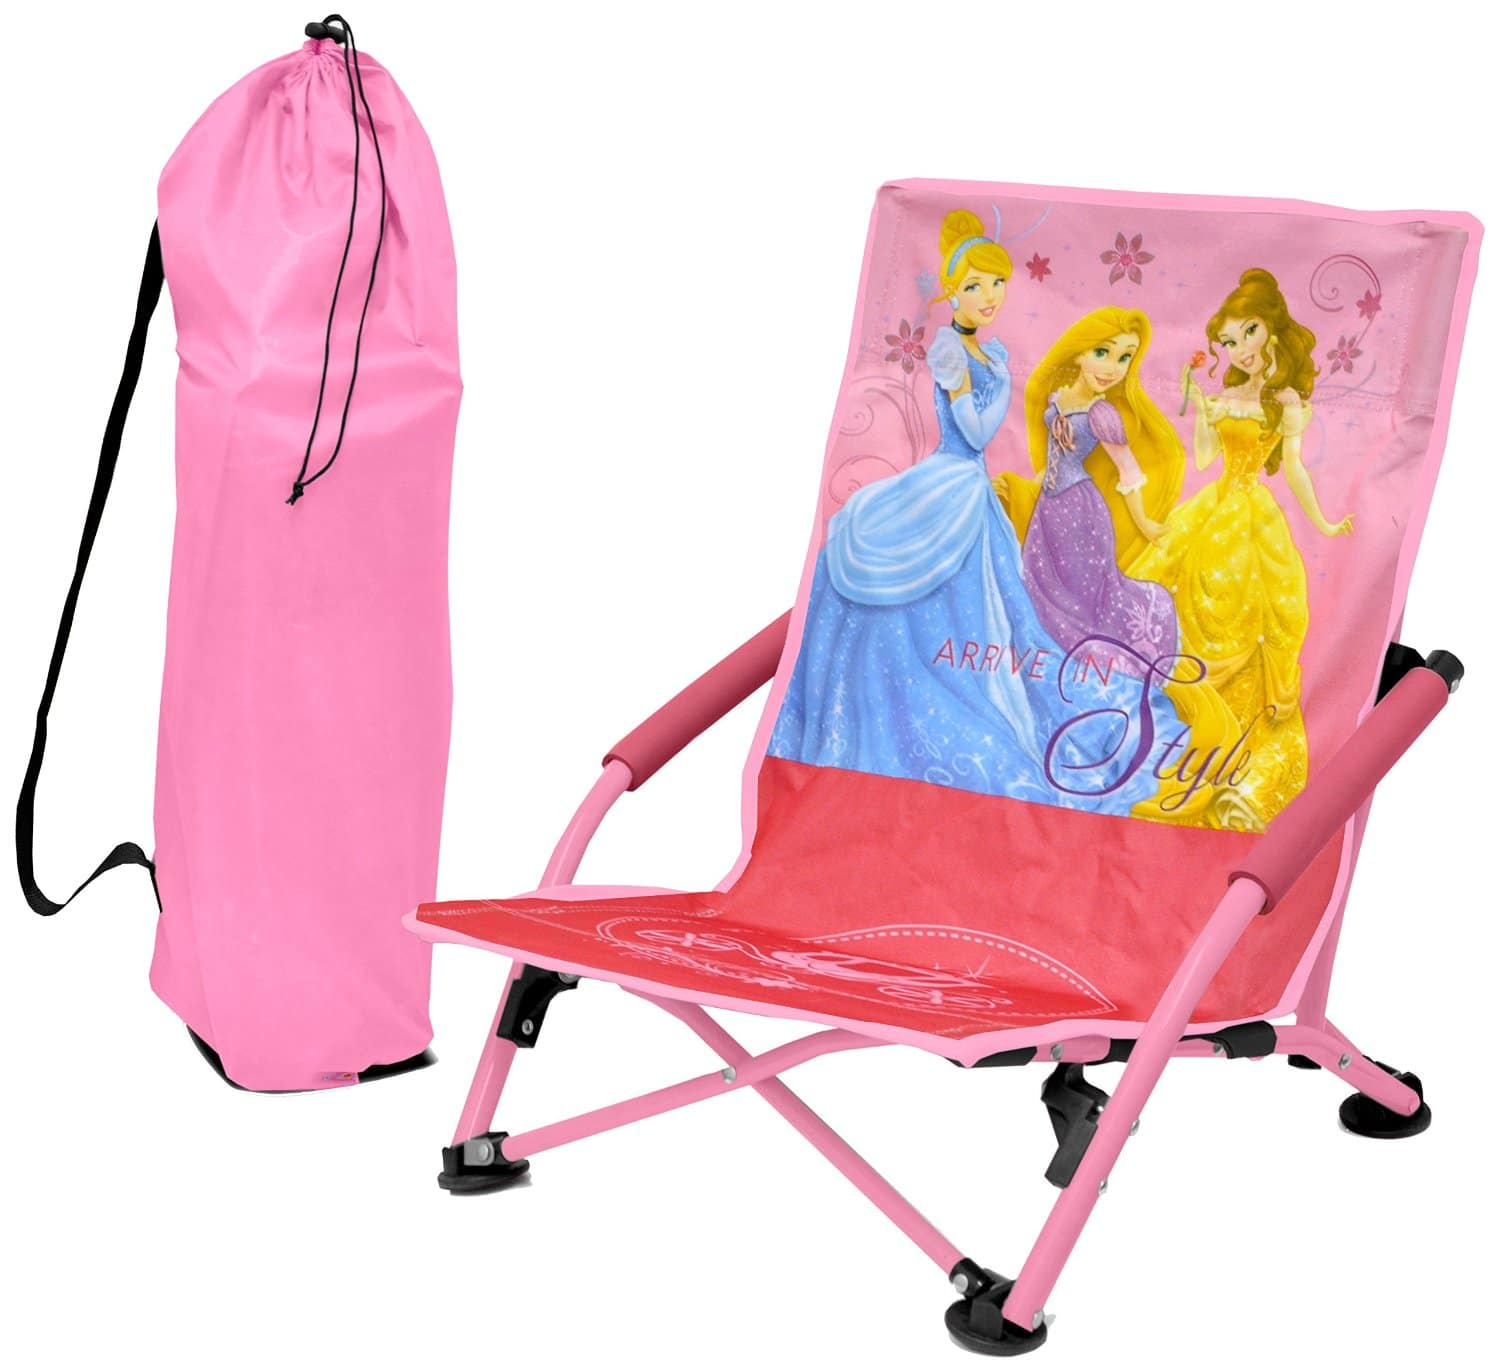 Pleasant Top 10 Best Folding Chairs For Kids In 2019 Reviews Pabps2019 Chair Design Images Pabps2019Com